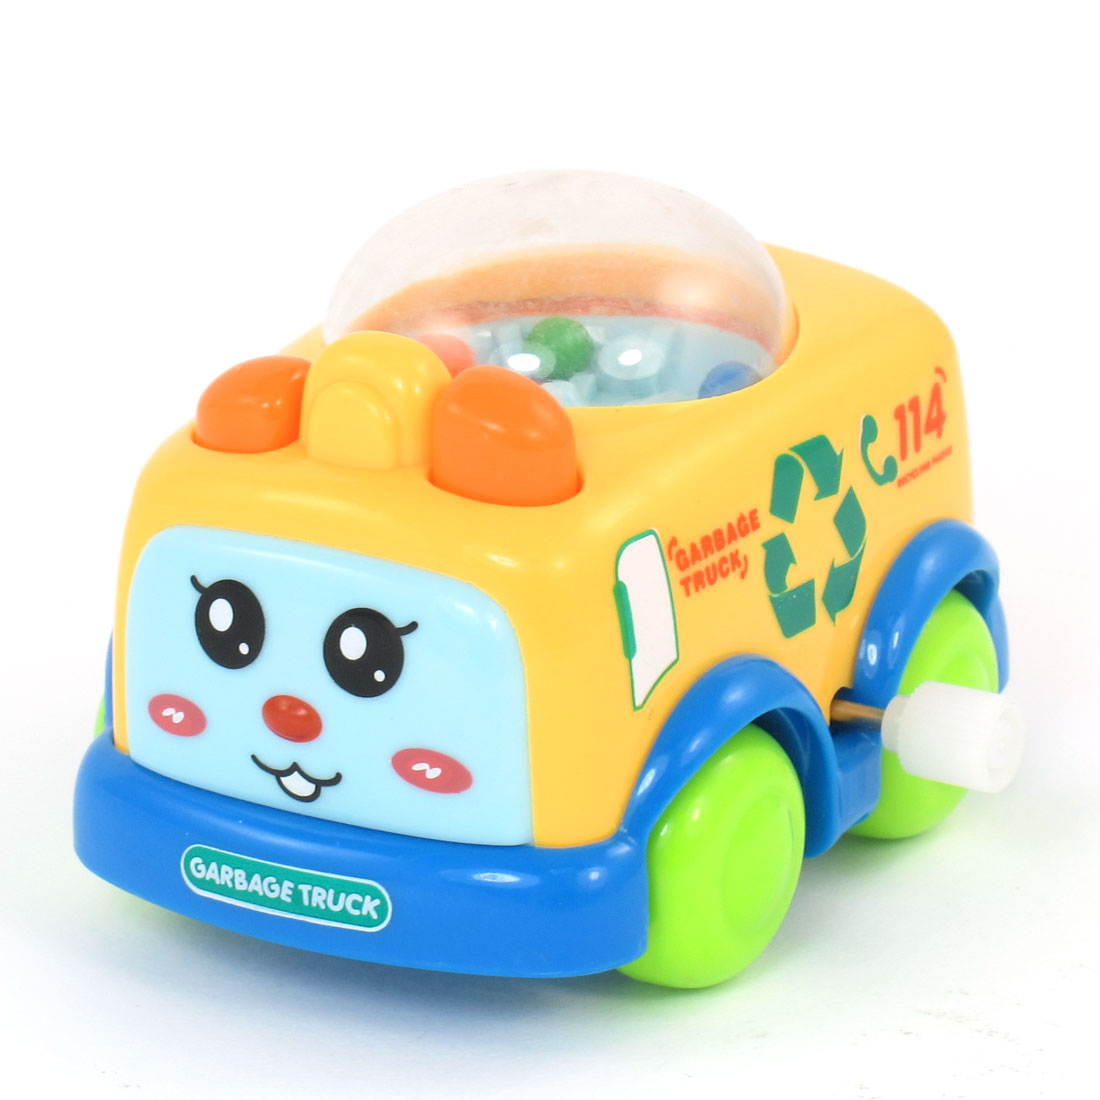 Multicolored Plastic Garbage Truck Car Toy for Child